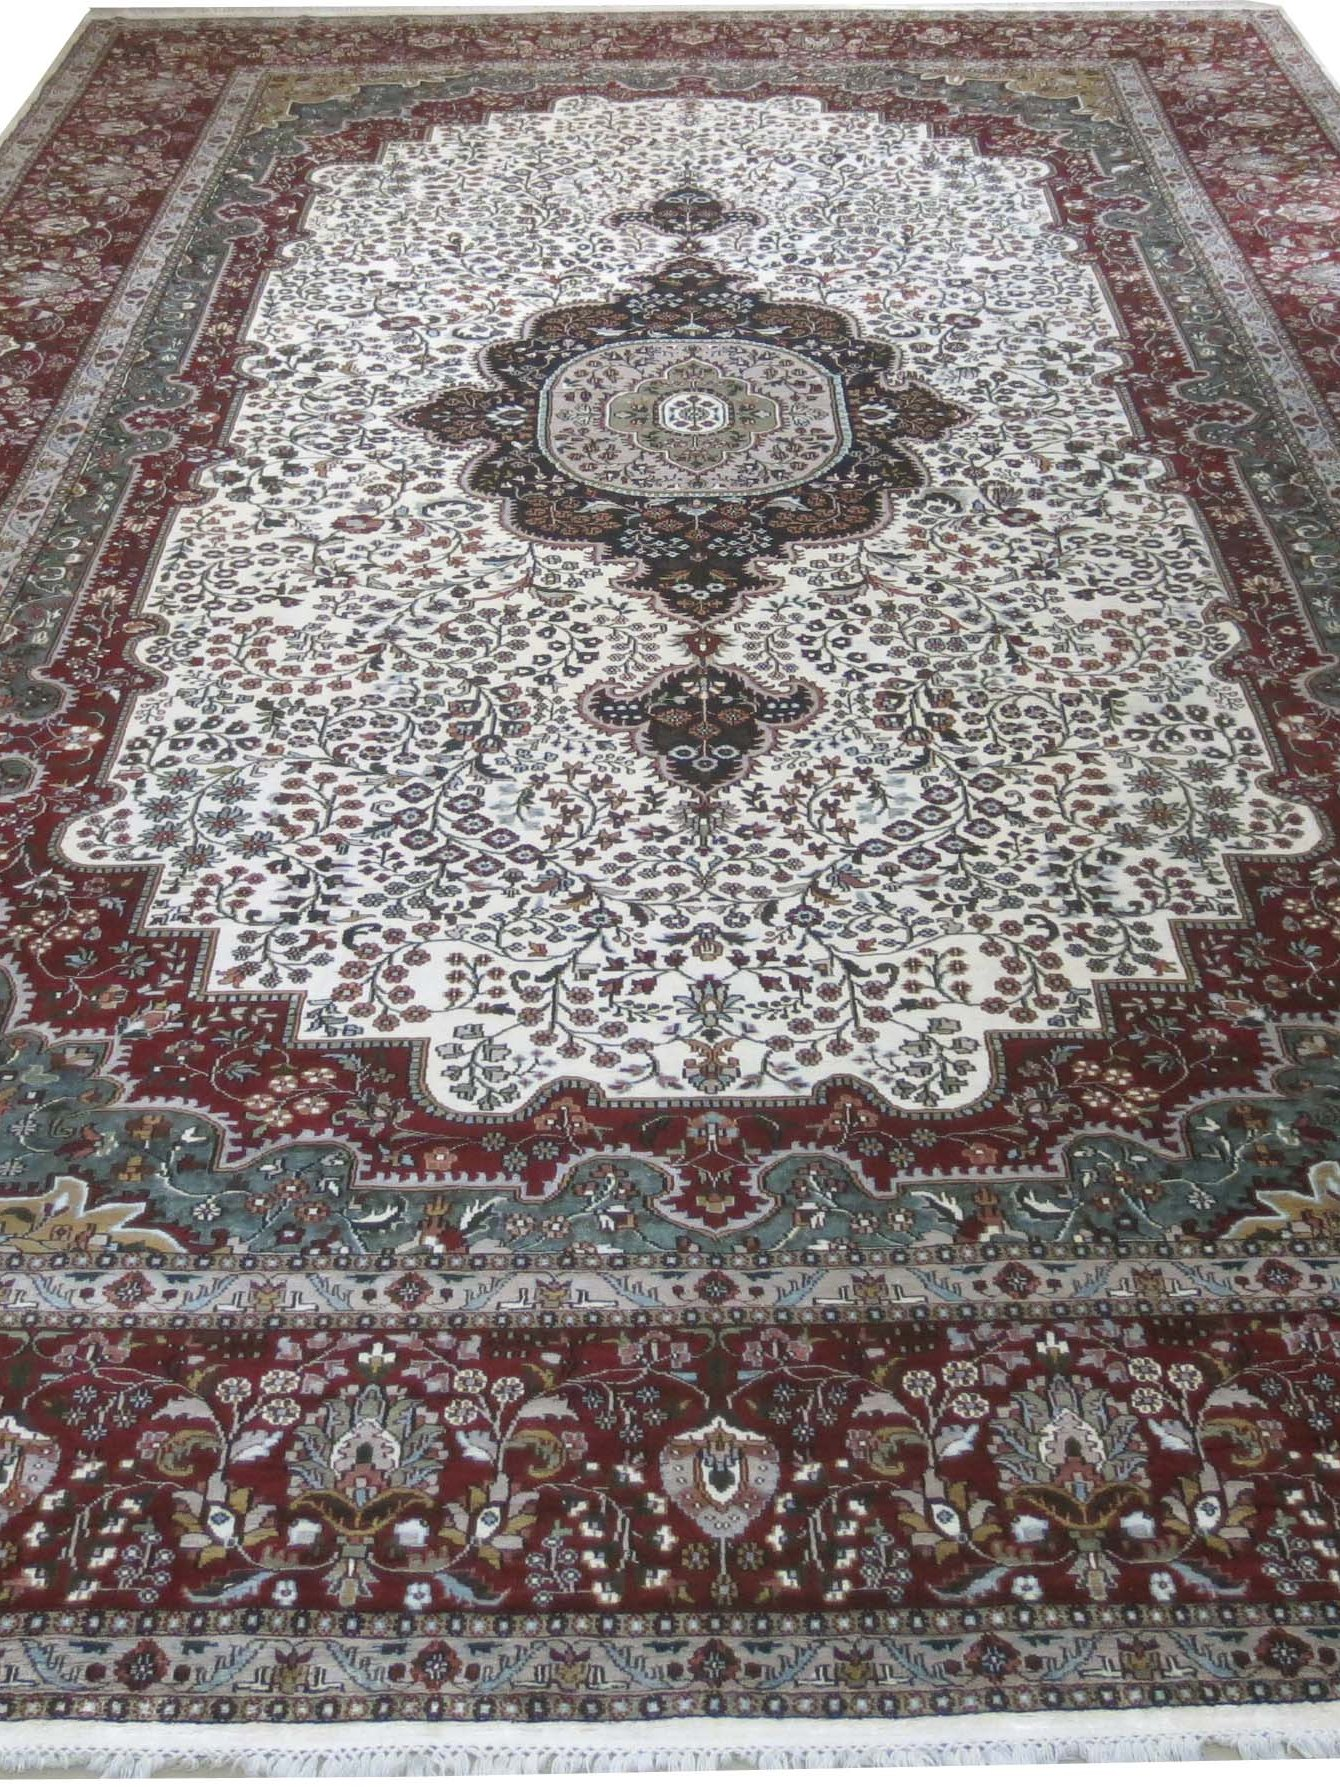 hand knotted 12 39 x 18 39 rug persian design silk rugs classy rugs clearance ebay. Black Bedroom Furniture Sets. Home Design Ideas